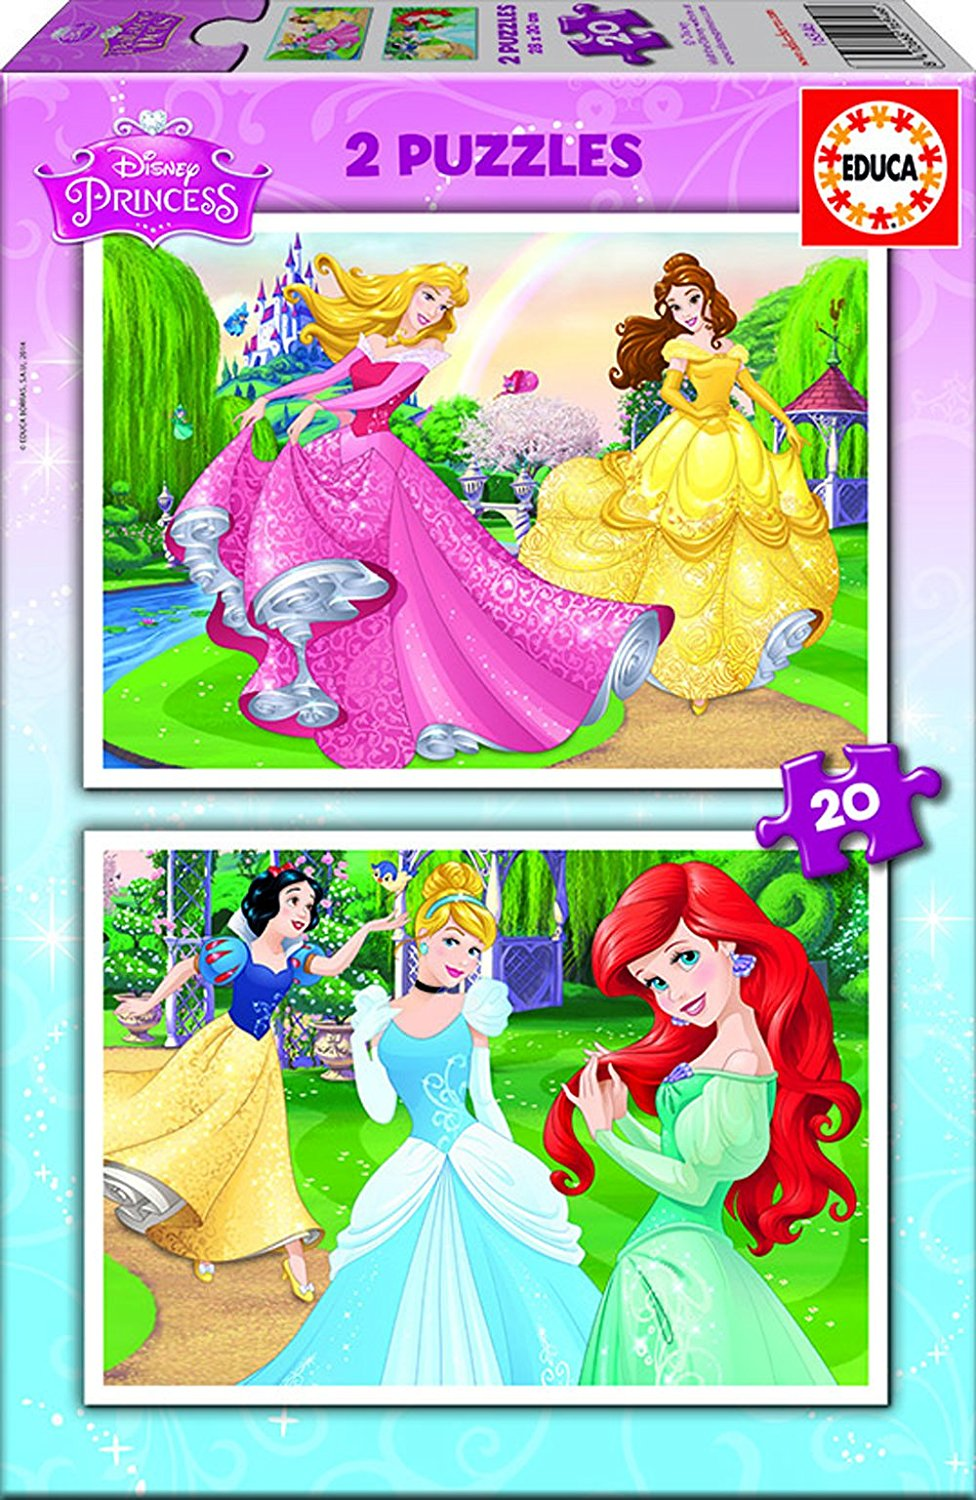 2-puzzles-disney-princess